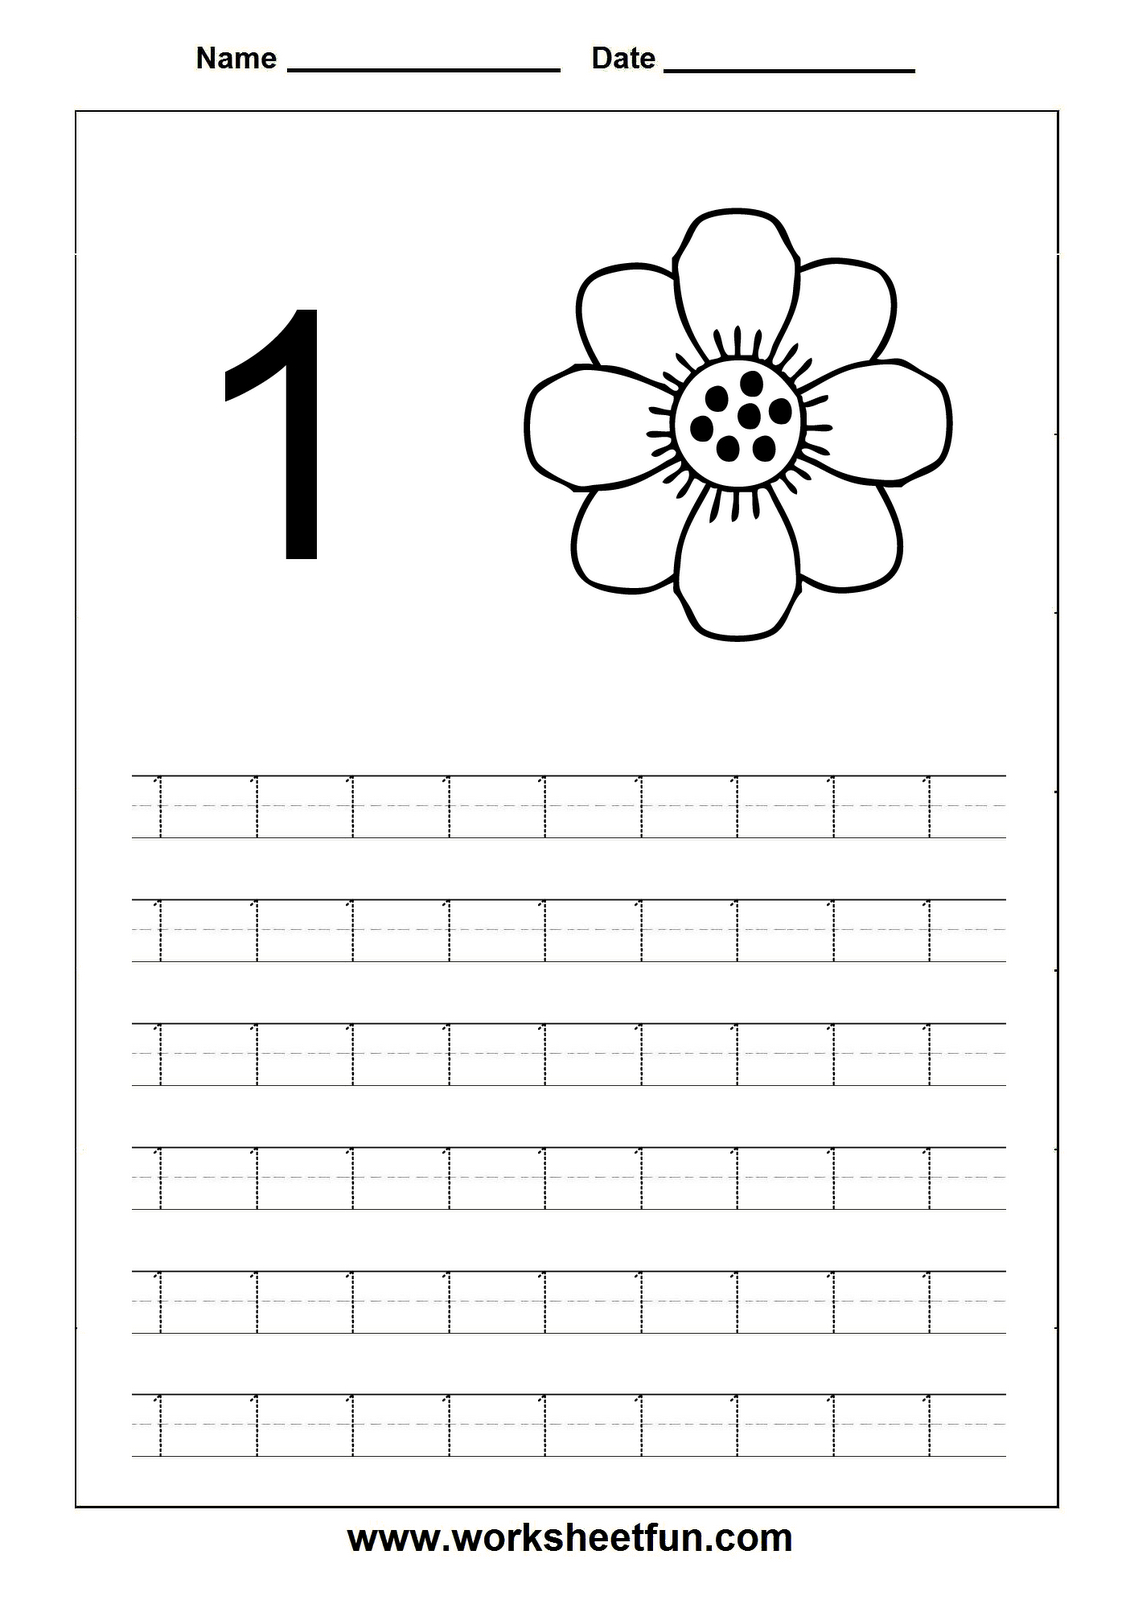 Craftsactvities And Worksheets For Preschooltoddler And Kindergarten With Regard To Number 1 Worksheets